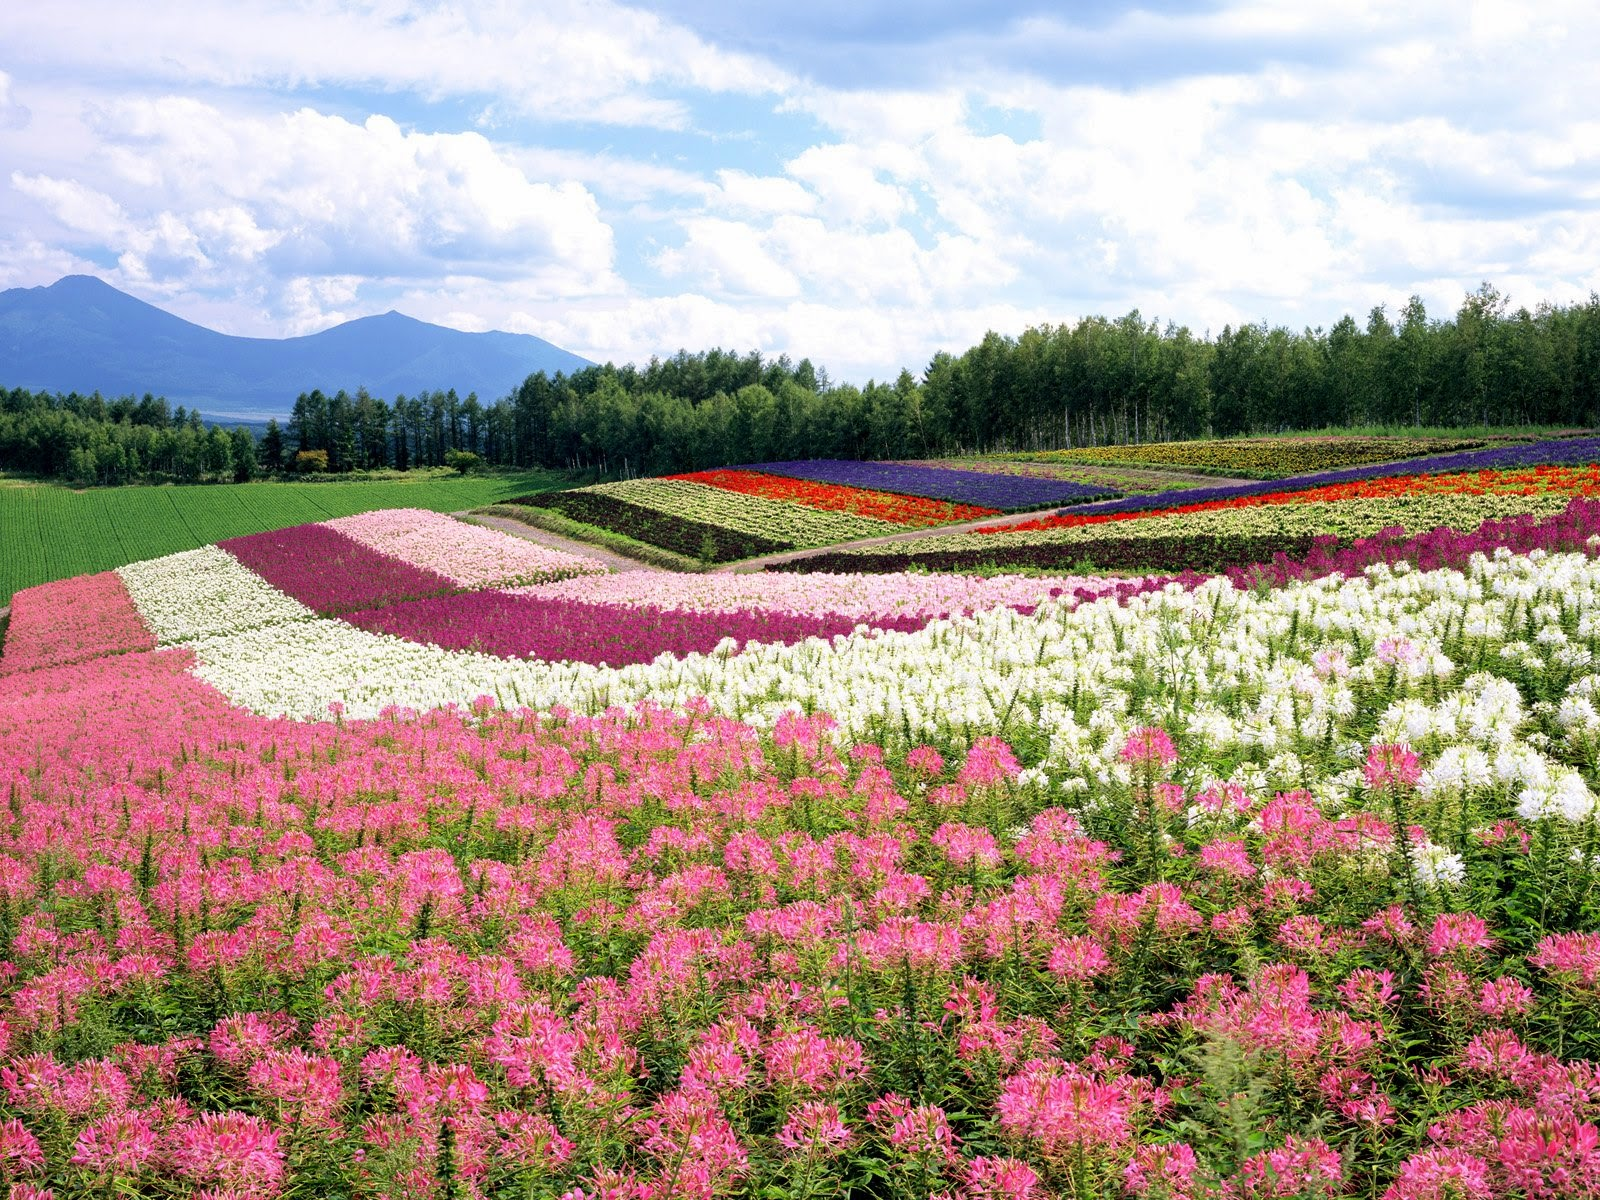 hd flower garden wallpaper|http://refreshrose.blogspot/